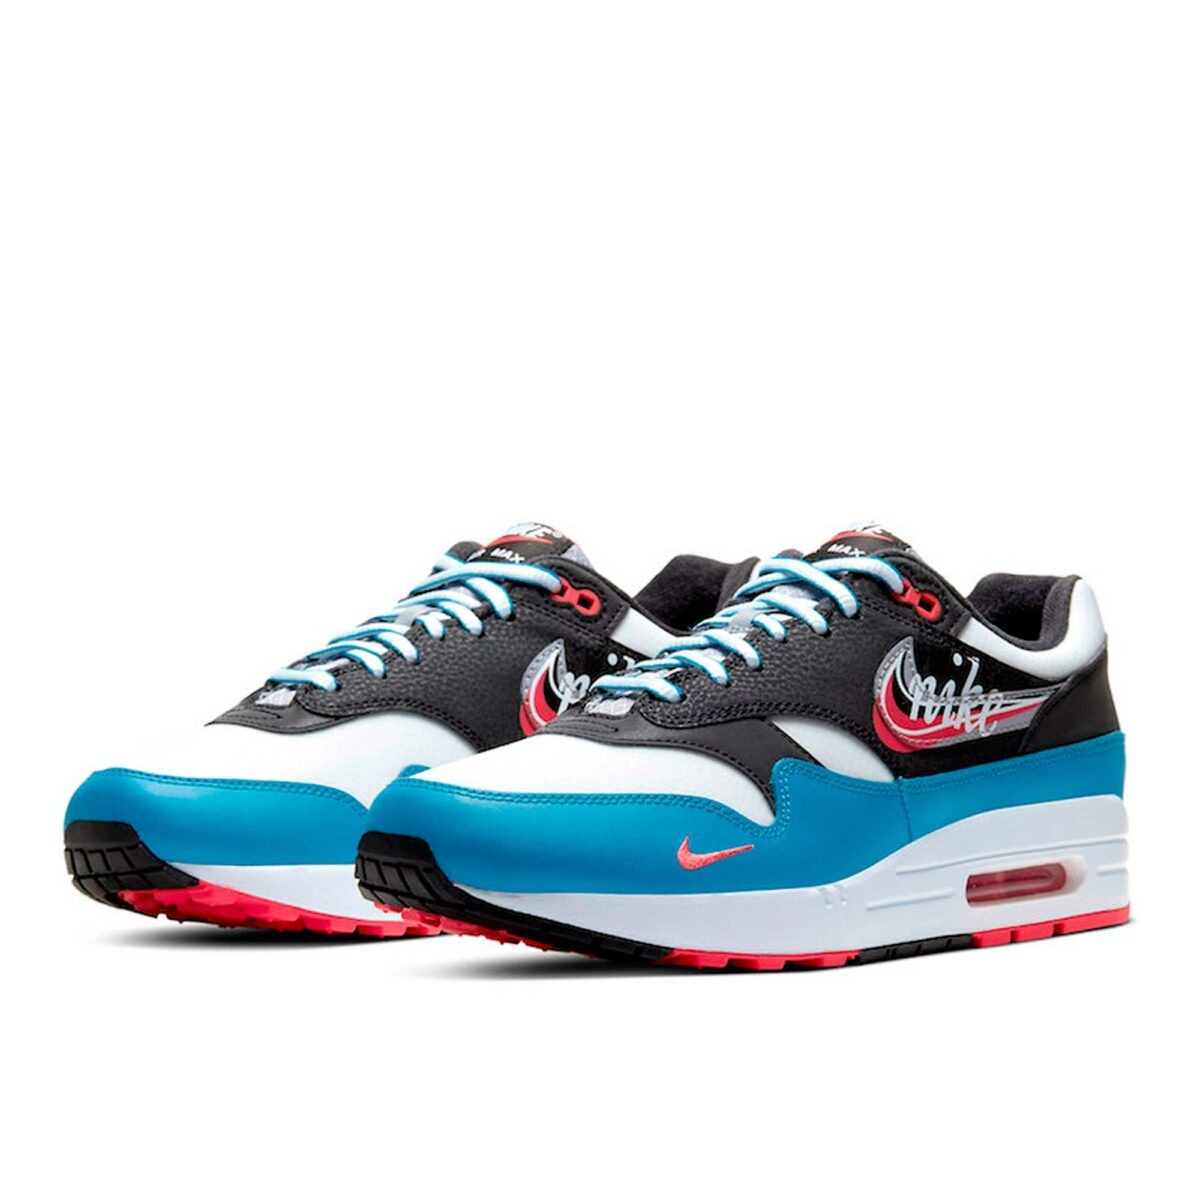 nike air max 1 script swoosh CT1623_001 купить